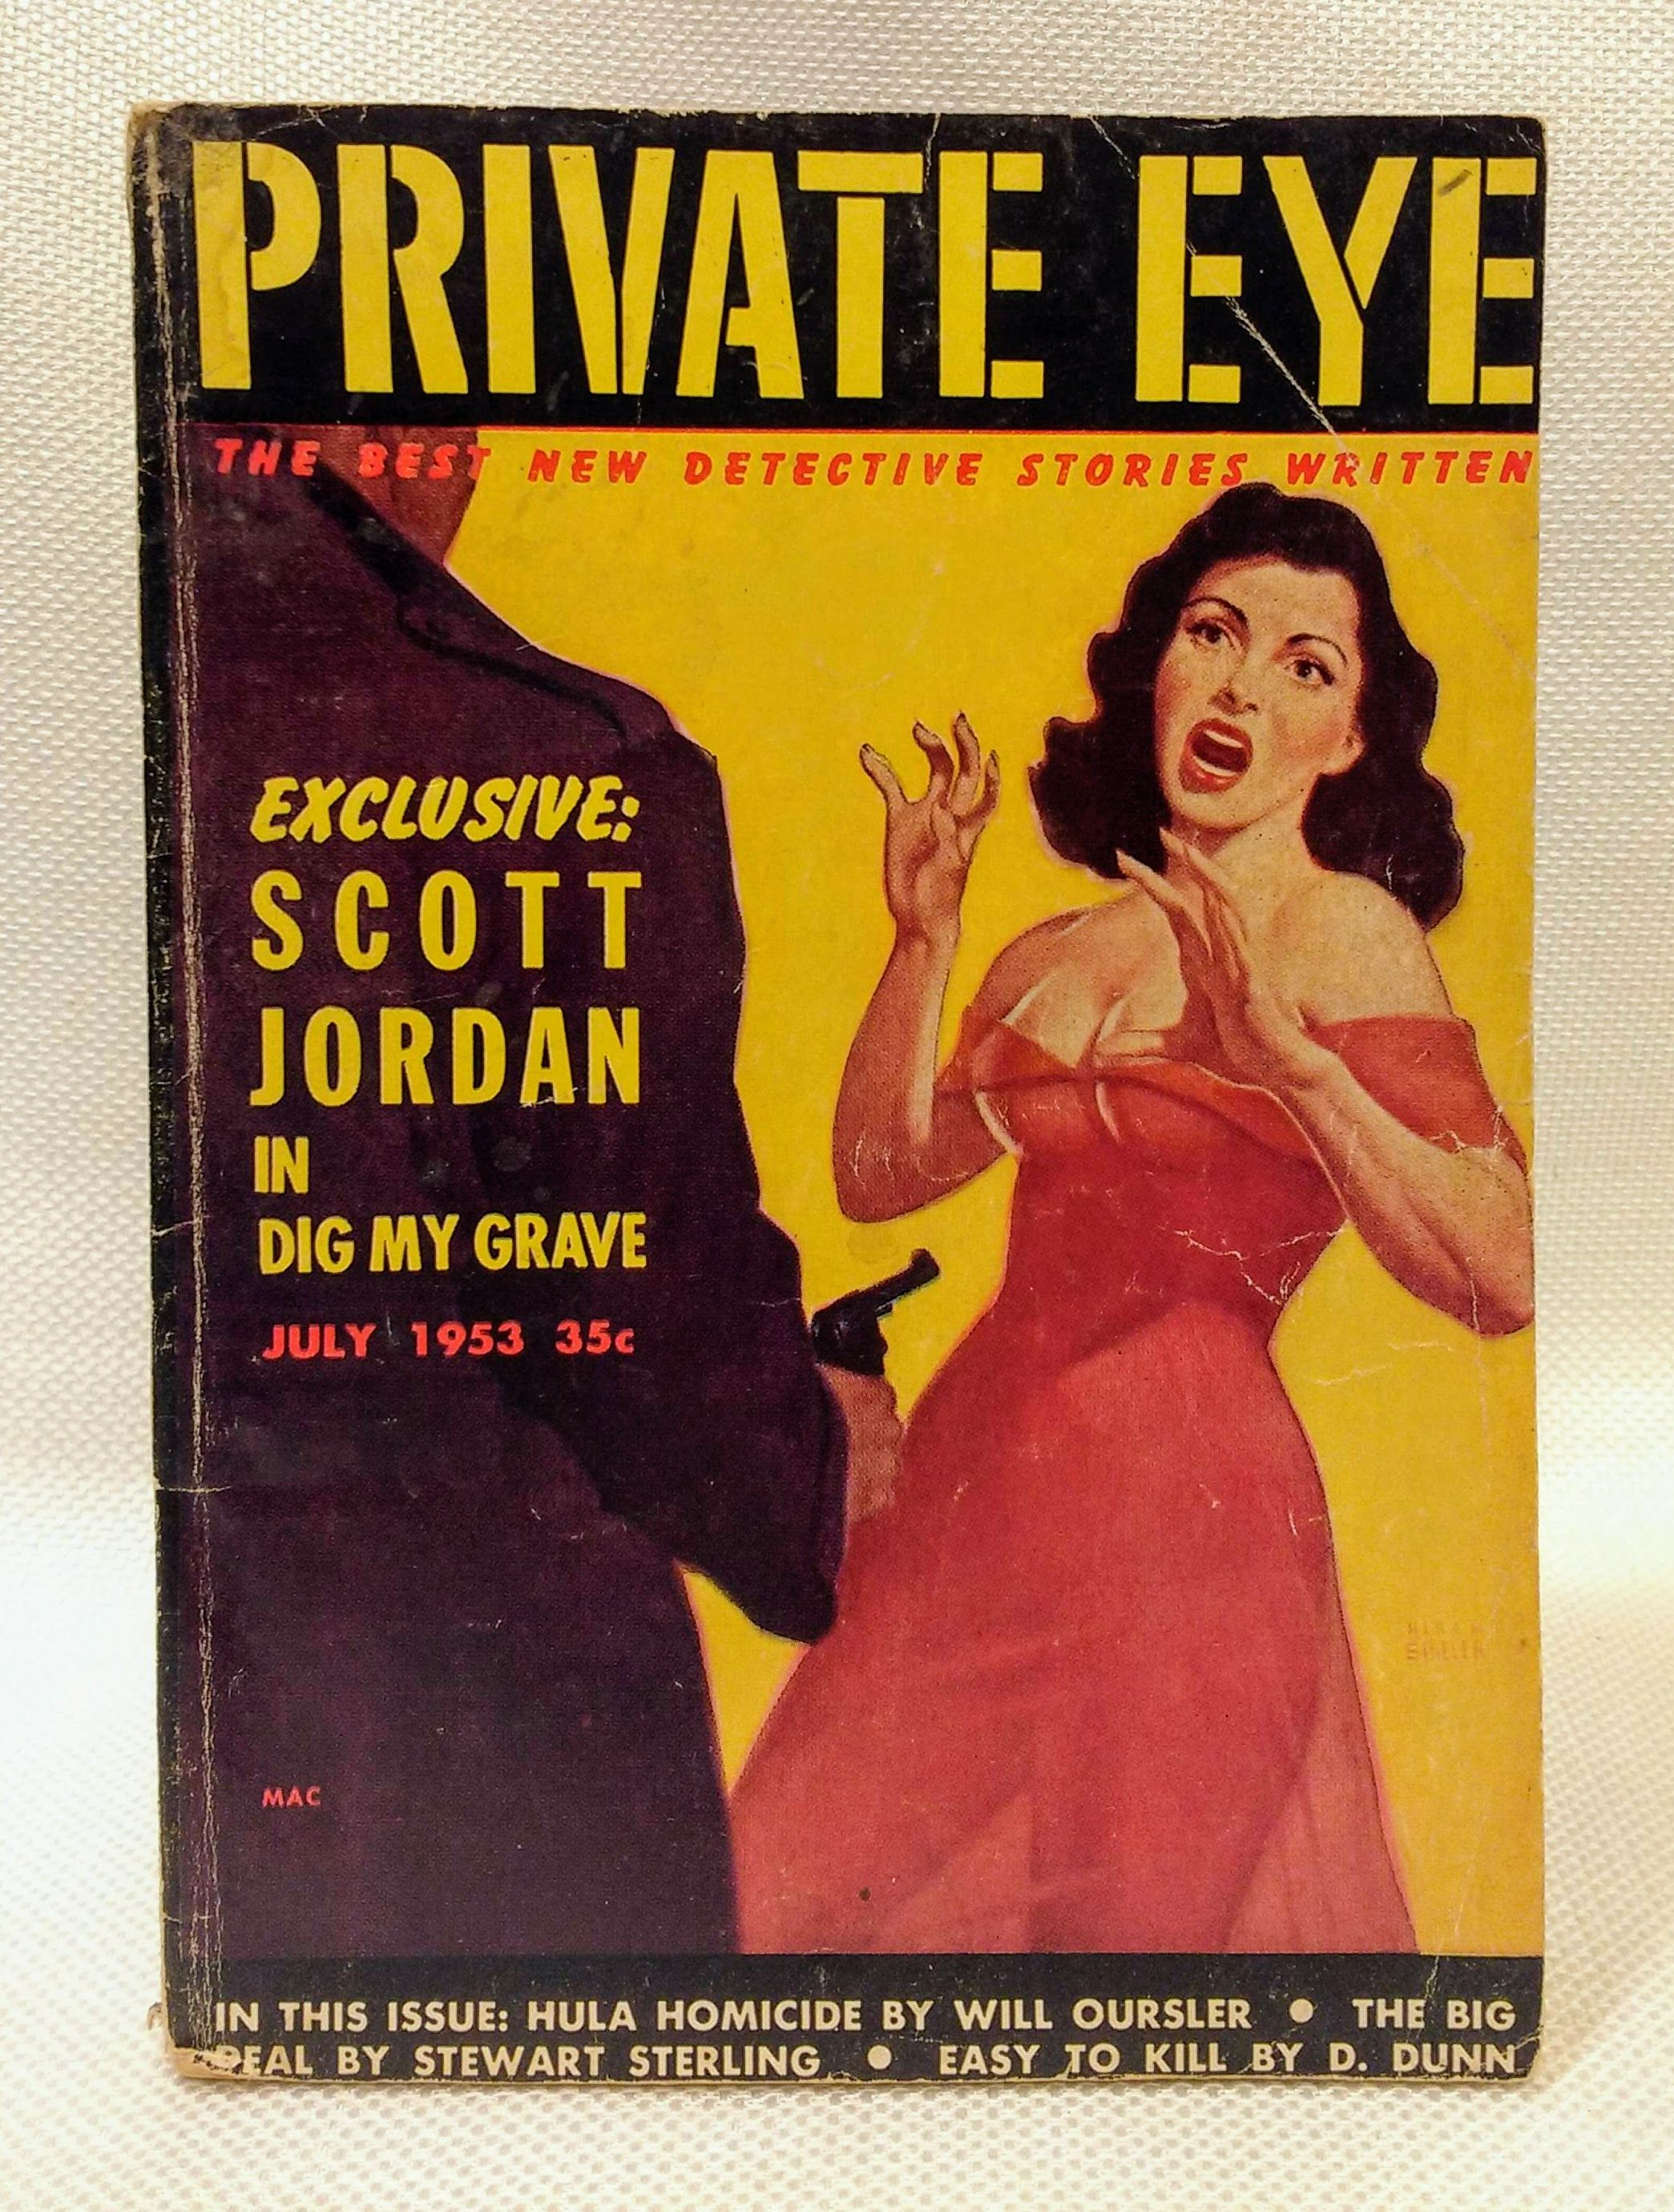 Image for Private Eye Magazine; Vol. 1, No. 1 (July 1953)